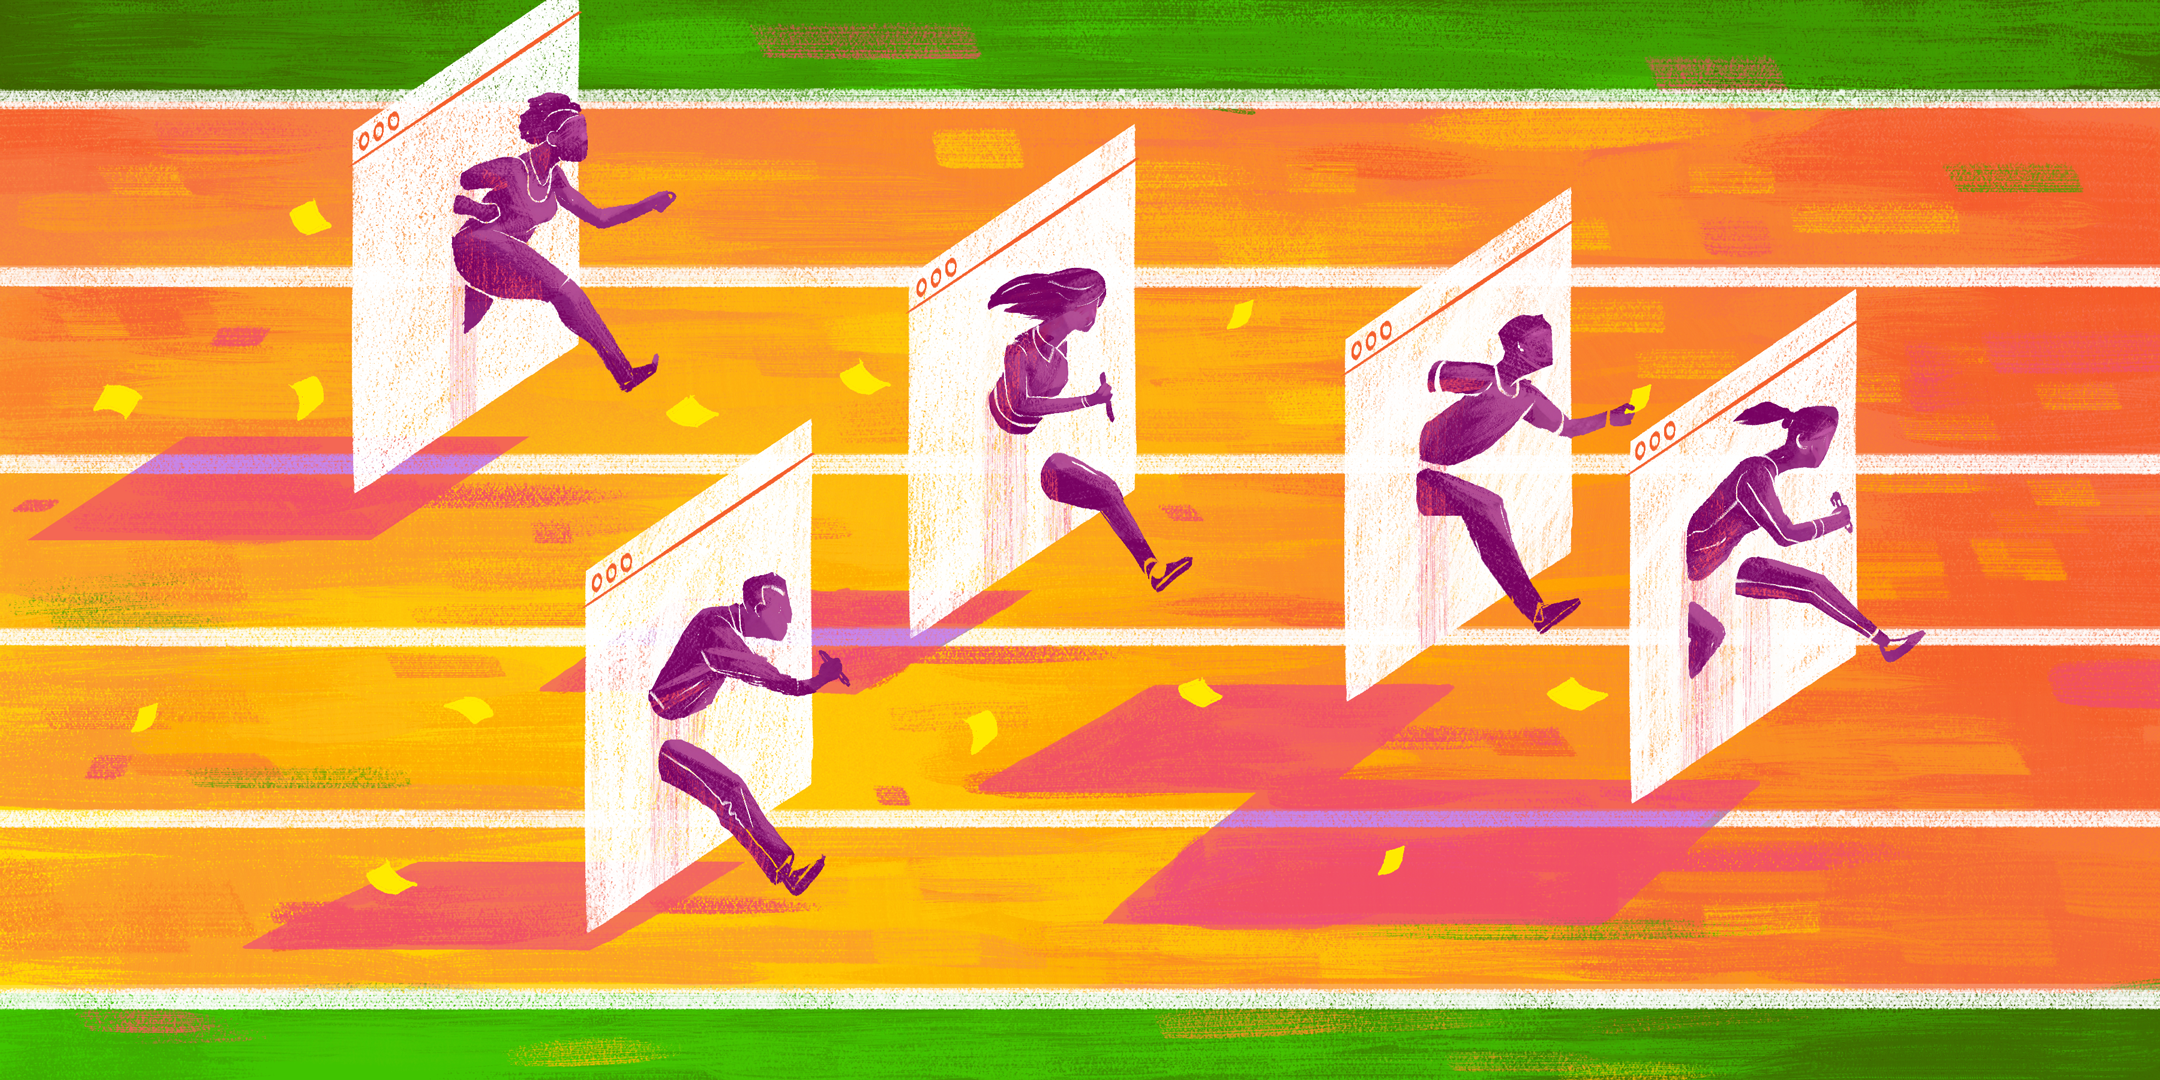 People sprinting on a track as they each break through a computer screen